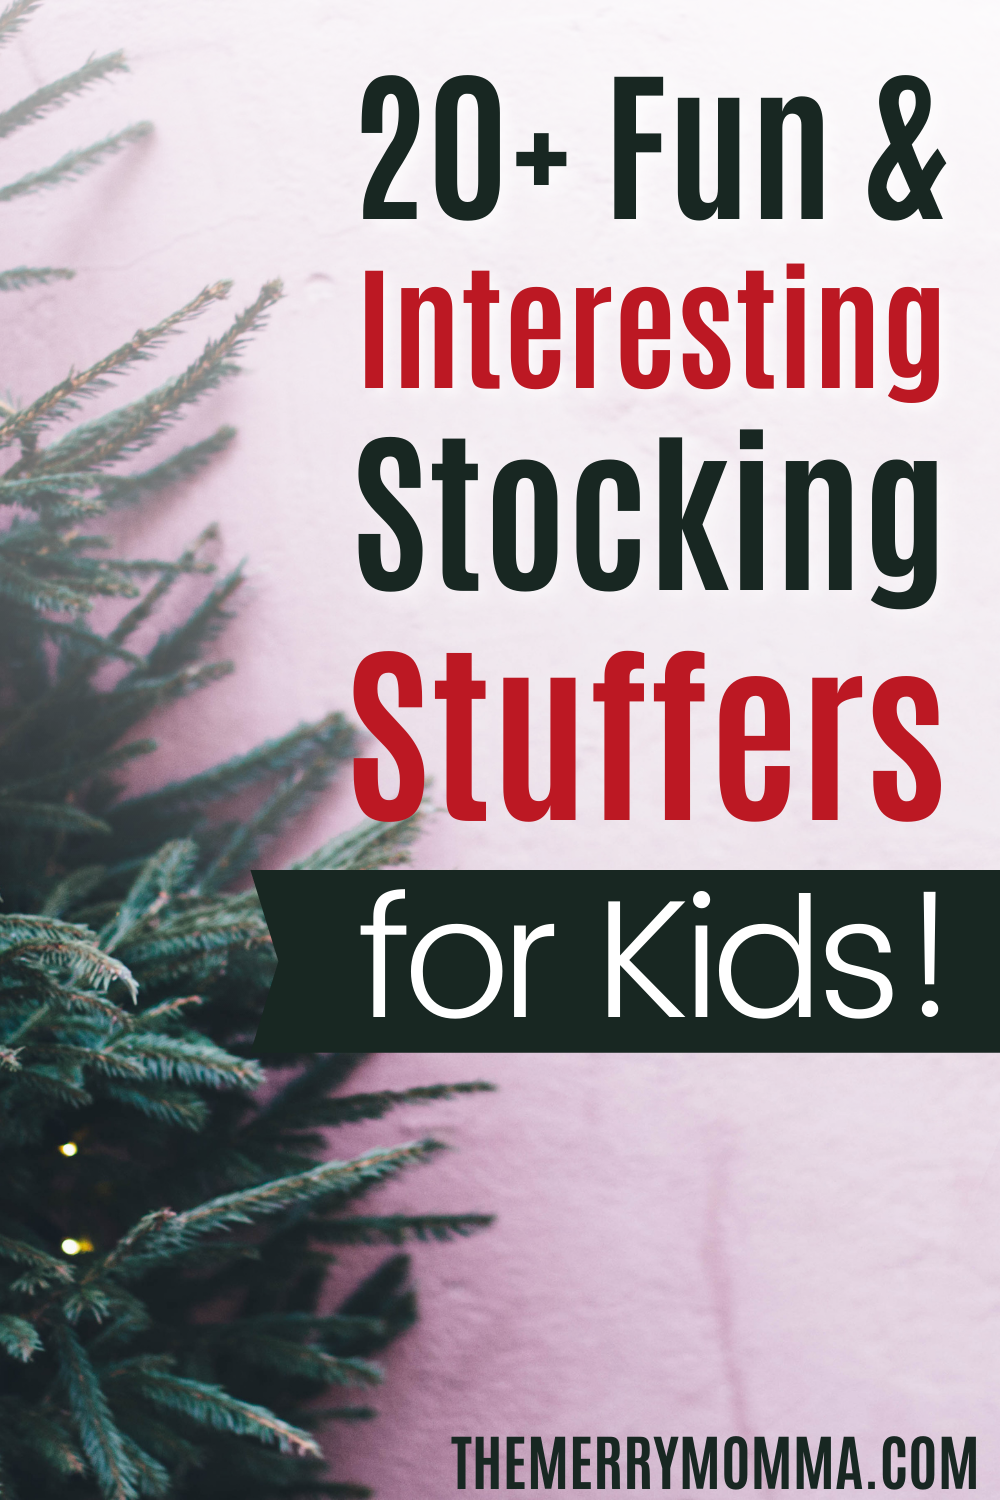 Fun & Interesting Stocking Stuffers for Kids | The Merry Momma